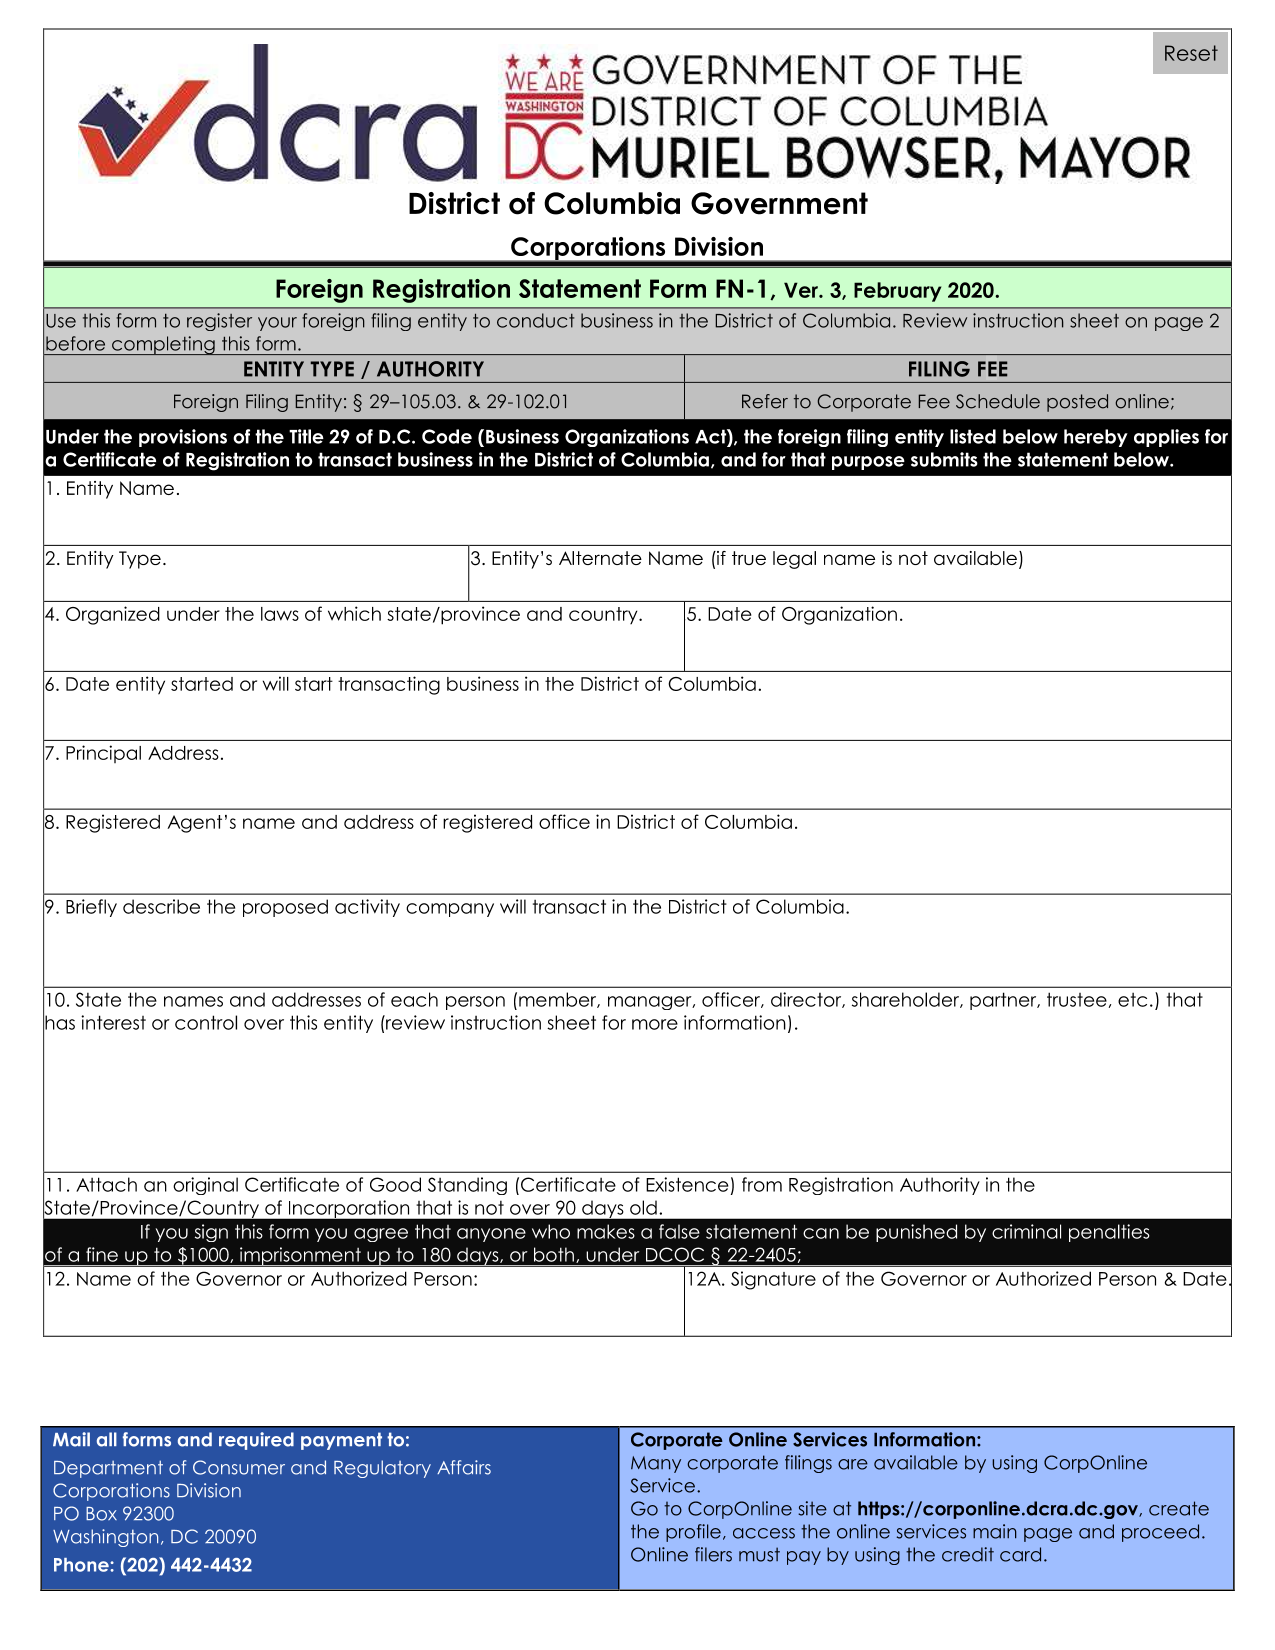 district-of-columbia-foreign-llc-foreign-registration-statement